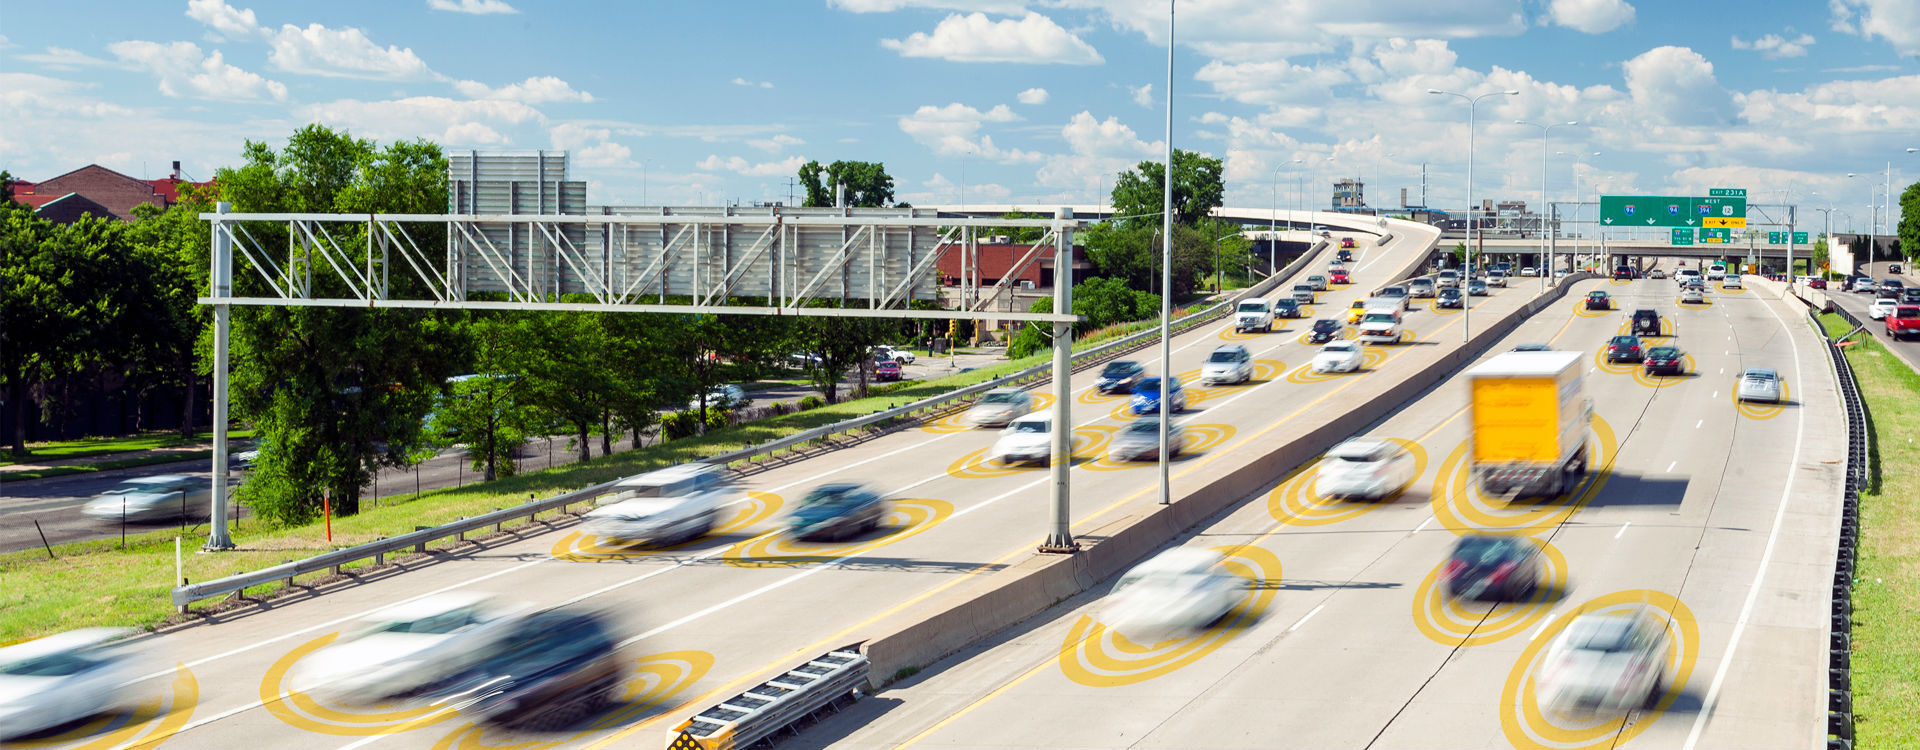 Connected vehicles will communicate wirelessly with one another for safety and navigational purposes, helping cars stay in lanes, recognize appropriate operating speeds and exit highways safely.